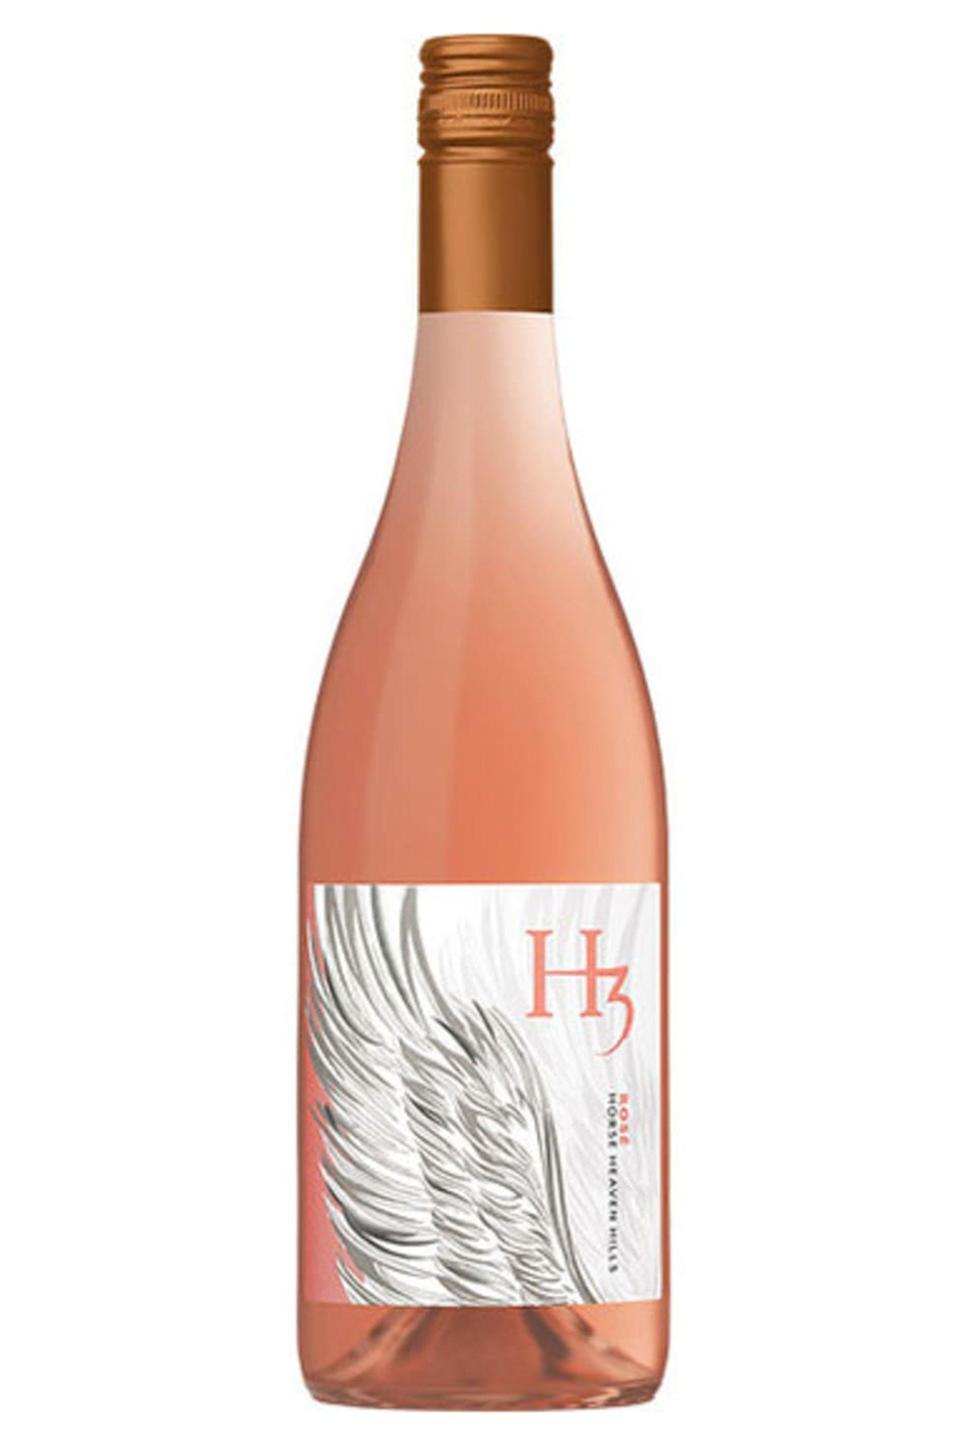 """<p><strong>wine enthusiast</strong></p><p>wine.com</p><p><strong>$17.99</strong></p><p><a href=""""https://go.redirectingat.com?id=74968X1596630&url=https%3A%2F%2Fwww.wine.com%2Fproduct%2Fcolumbia-crest-h3-rose-2019%2F742507&sref=https%3A%2F%2Fwww.townandcountrymag.com%2Fleisure%2Fdrinks%2Fnews%2Fg1319%2Fbest-rose-brands%2F"""" rel=""""nofollow noopener"""" target=""""_blank"""" data-ylk=""""slk:Shop Now"""" class=""""link rapid-noclick-resp"""">Shop Now</a></p><p>Floral notes of stonefruit and melon make this syrah and cabernet-based rosé a natural pairing for light summer fare like seafood and pasta. </p>"""